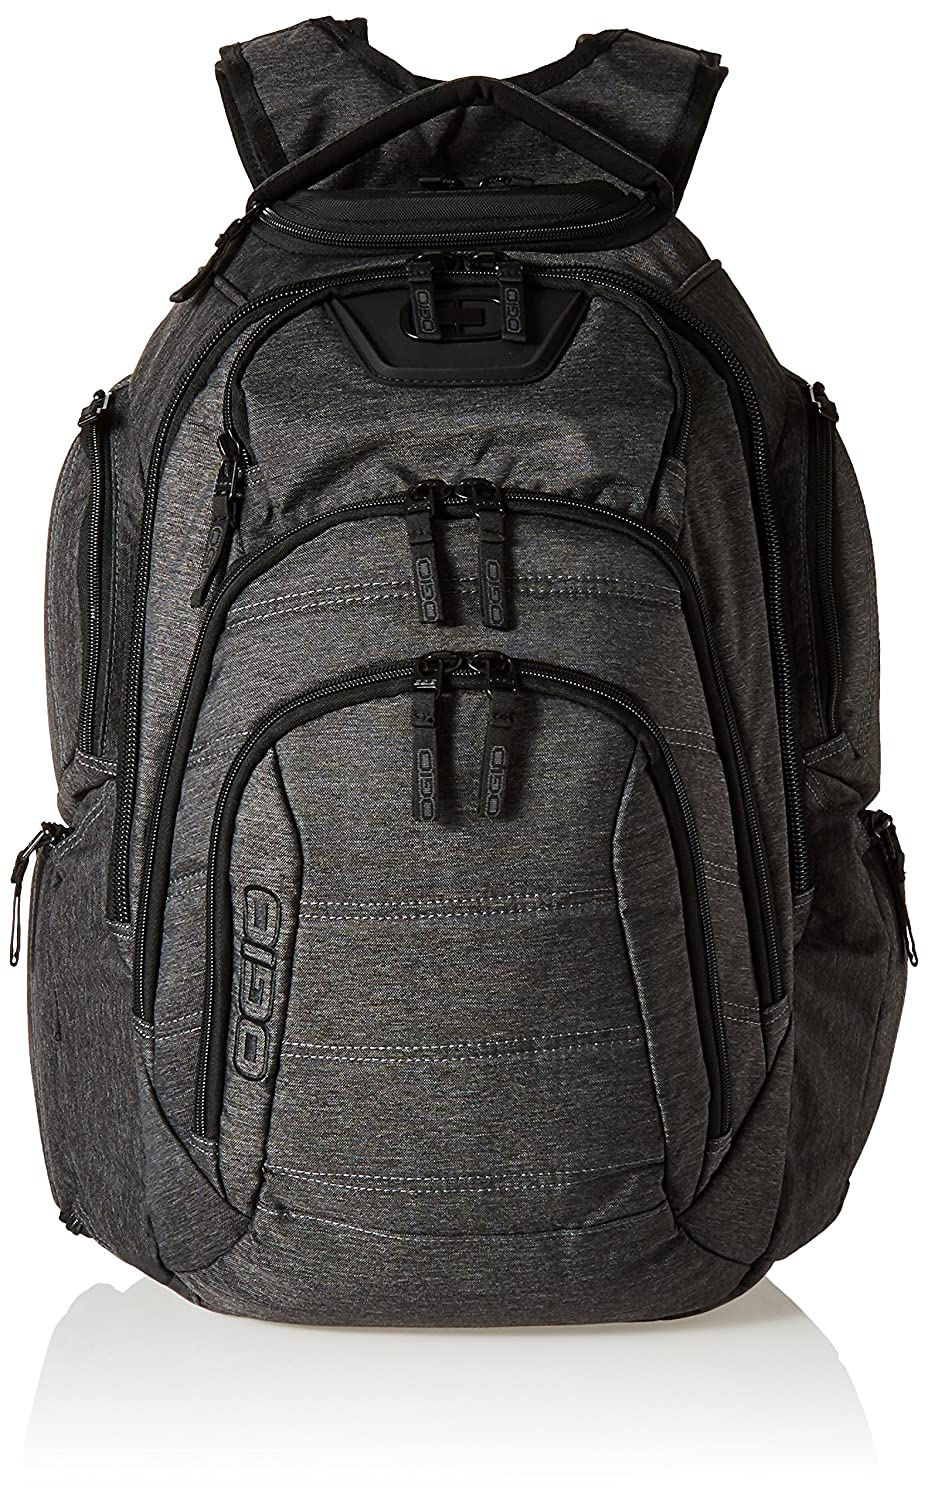 OGIO Renegade Rss Pack Backpack, Dark Static, One Size (Model: 111071.437) ACIC1